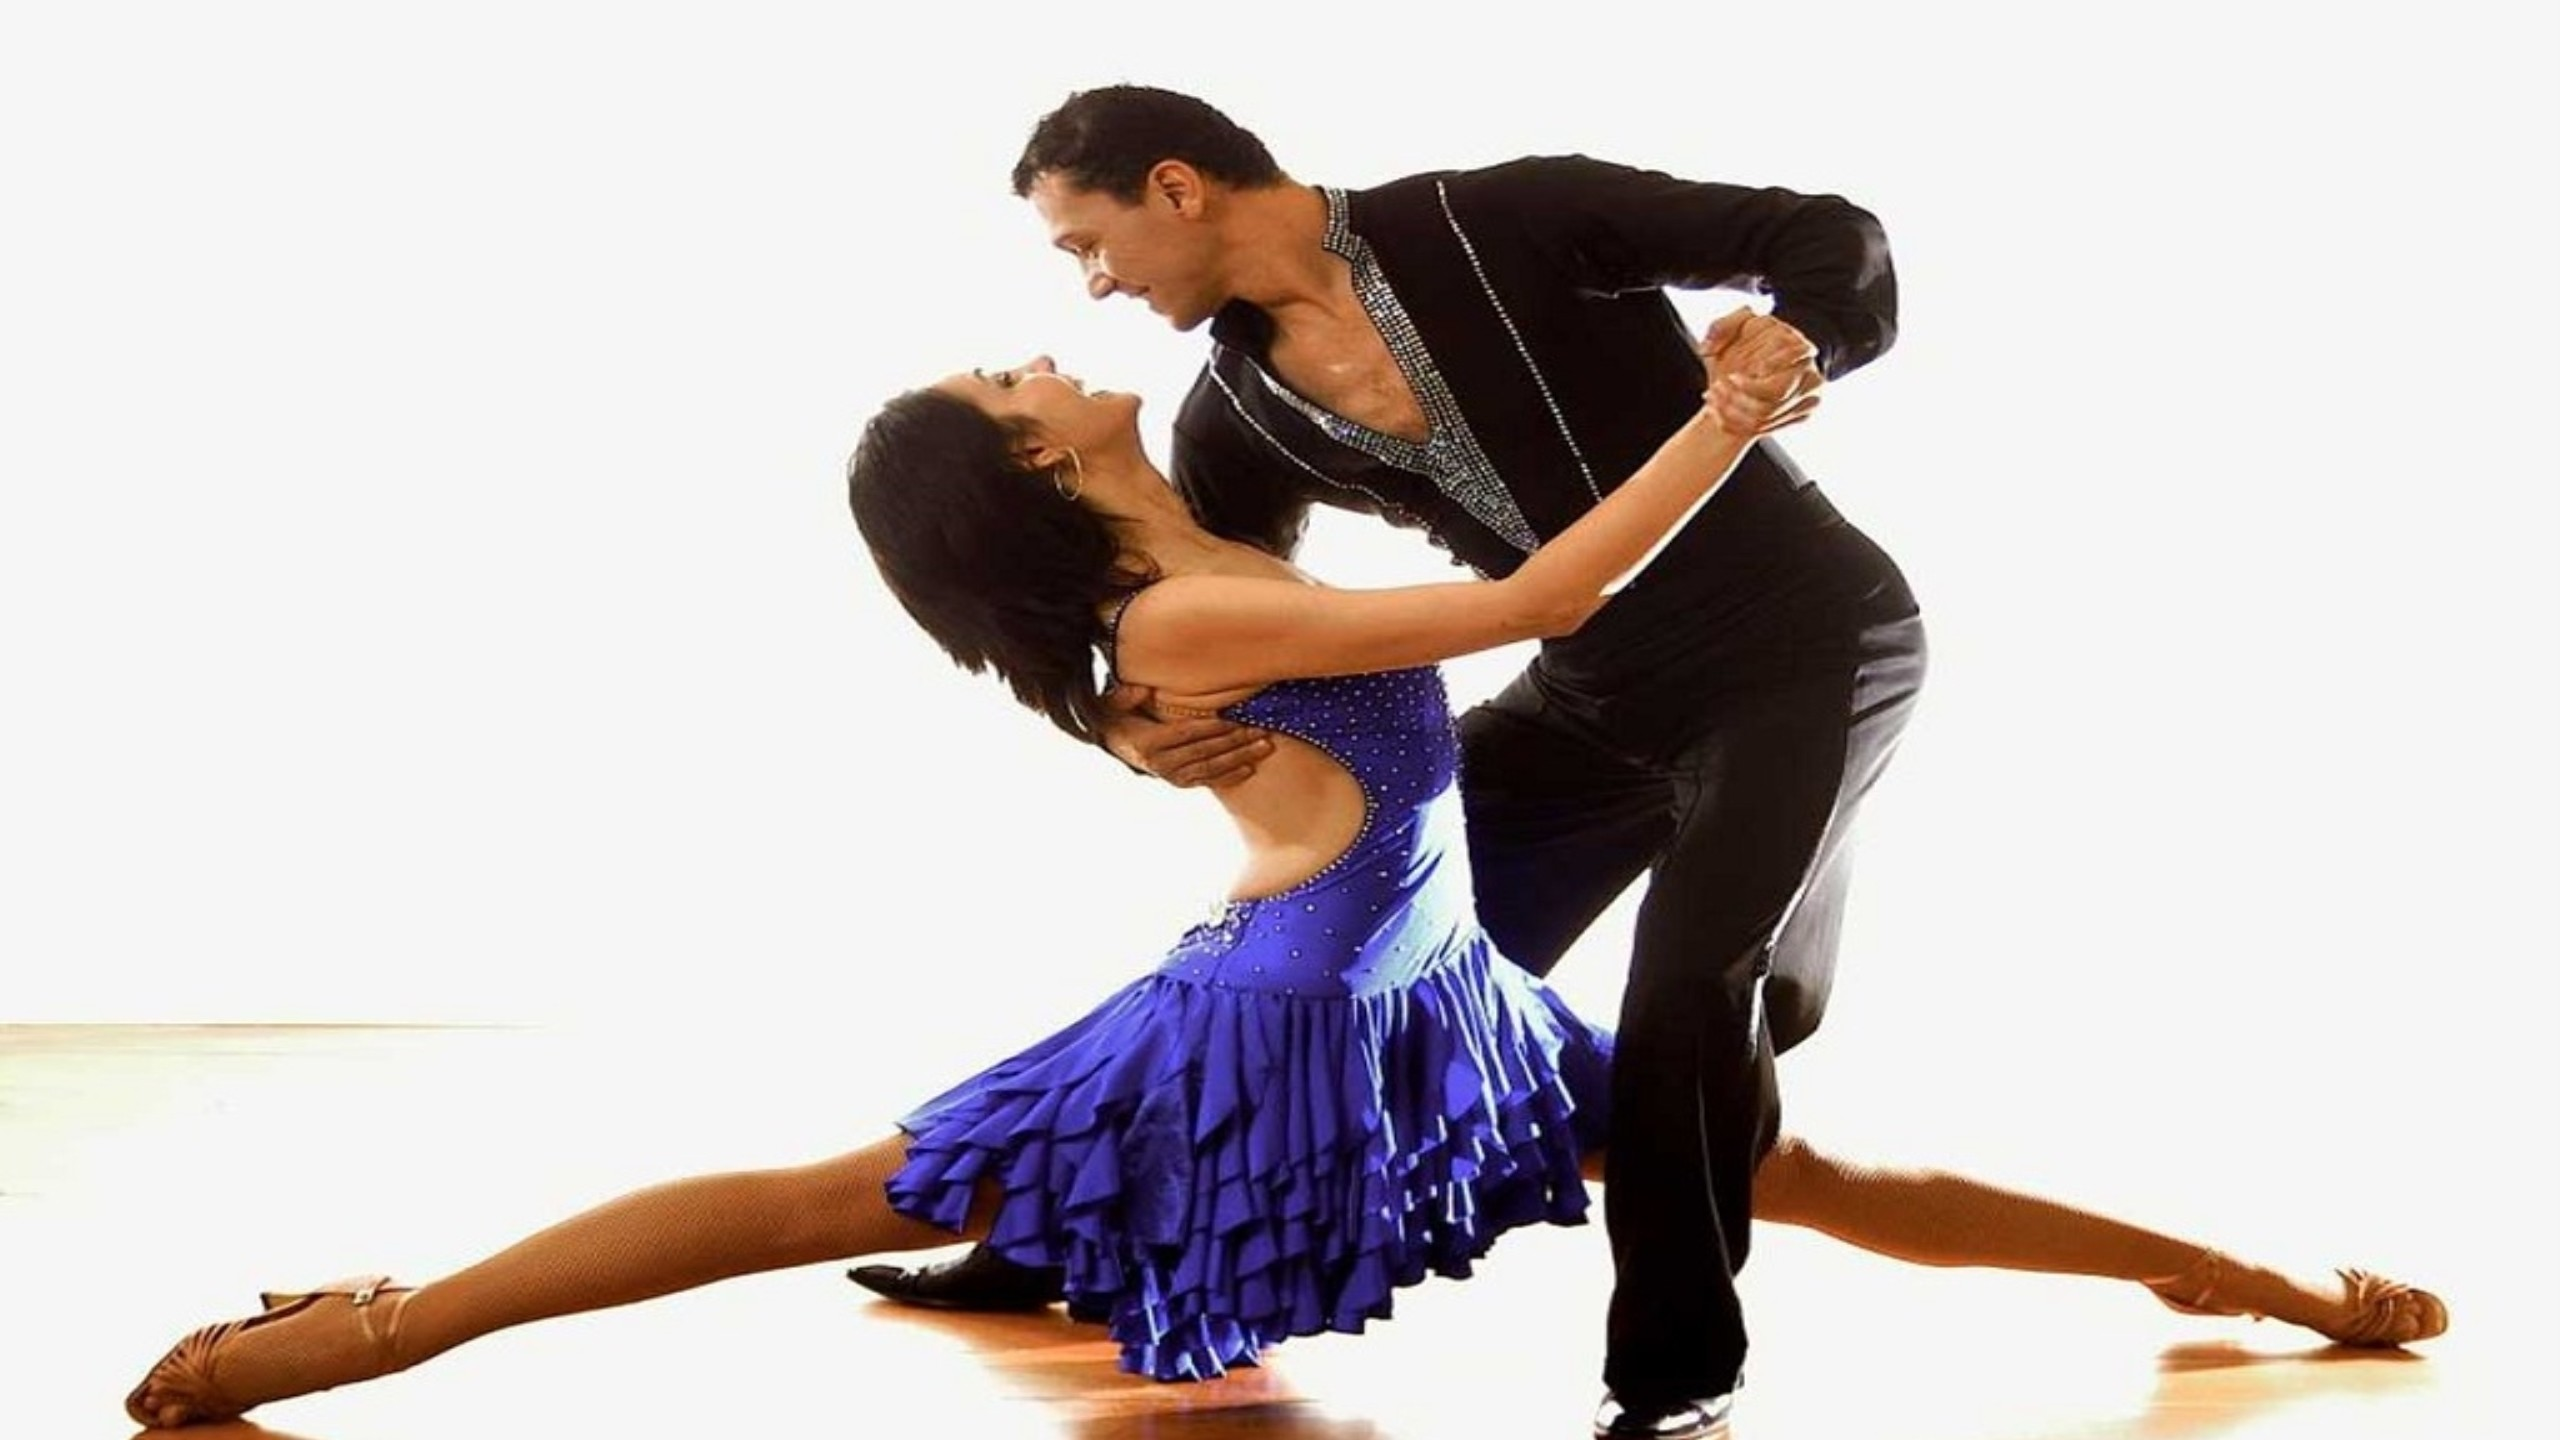 Salsa Dance Hd Wallpaper - ClipArt Best